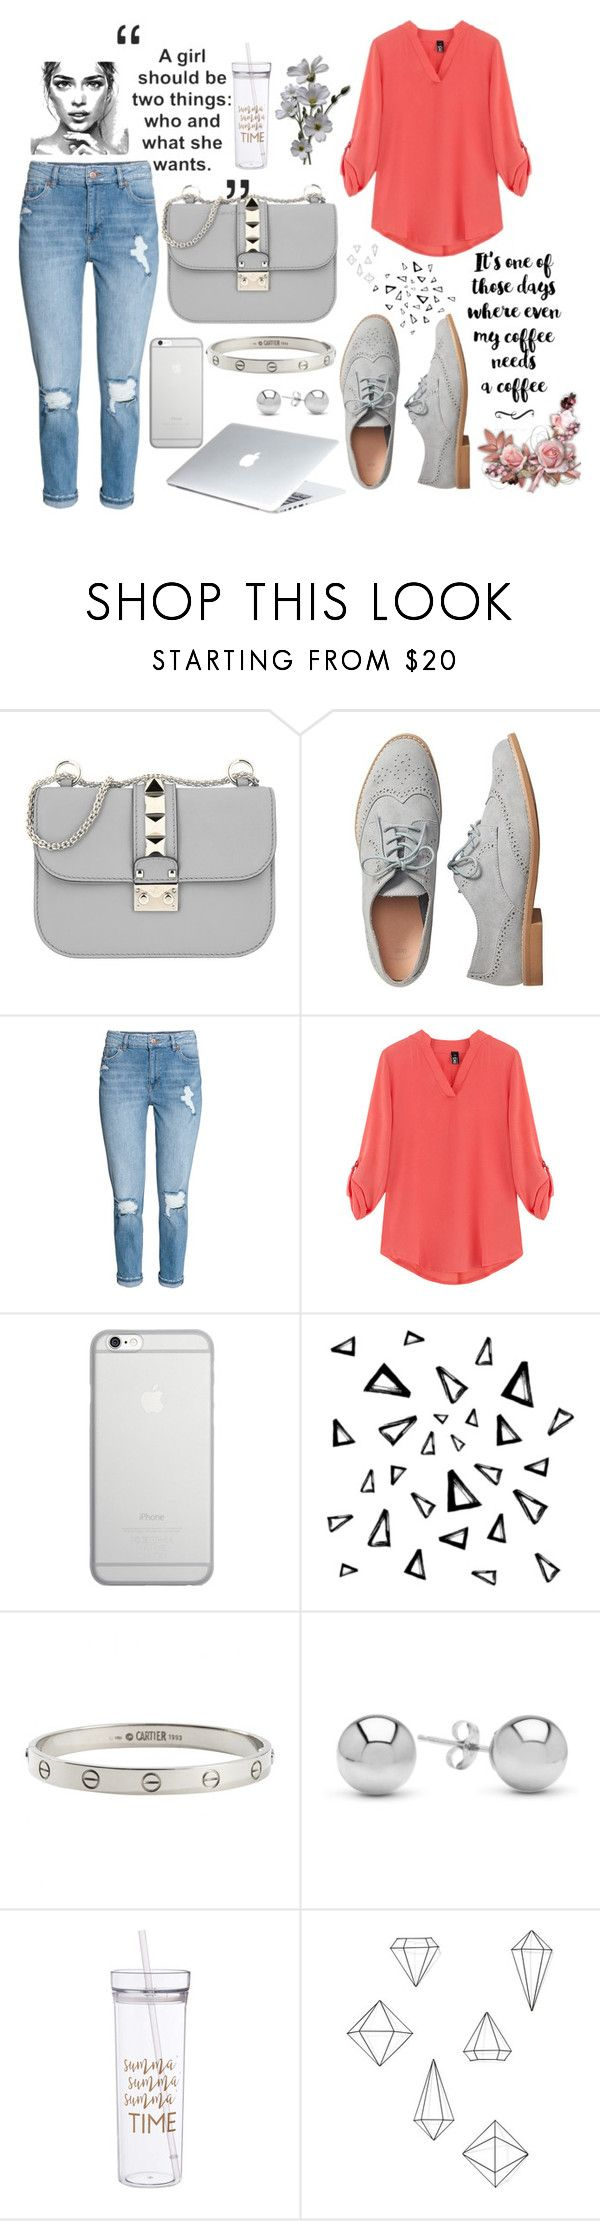 """Outfit"" by jeca09 ❤ liked on Polyvore featuring Valentino, Gap, Native Union, Dyson, Nika, Cartier, Jewelonfire and Umbra"